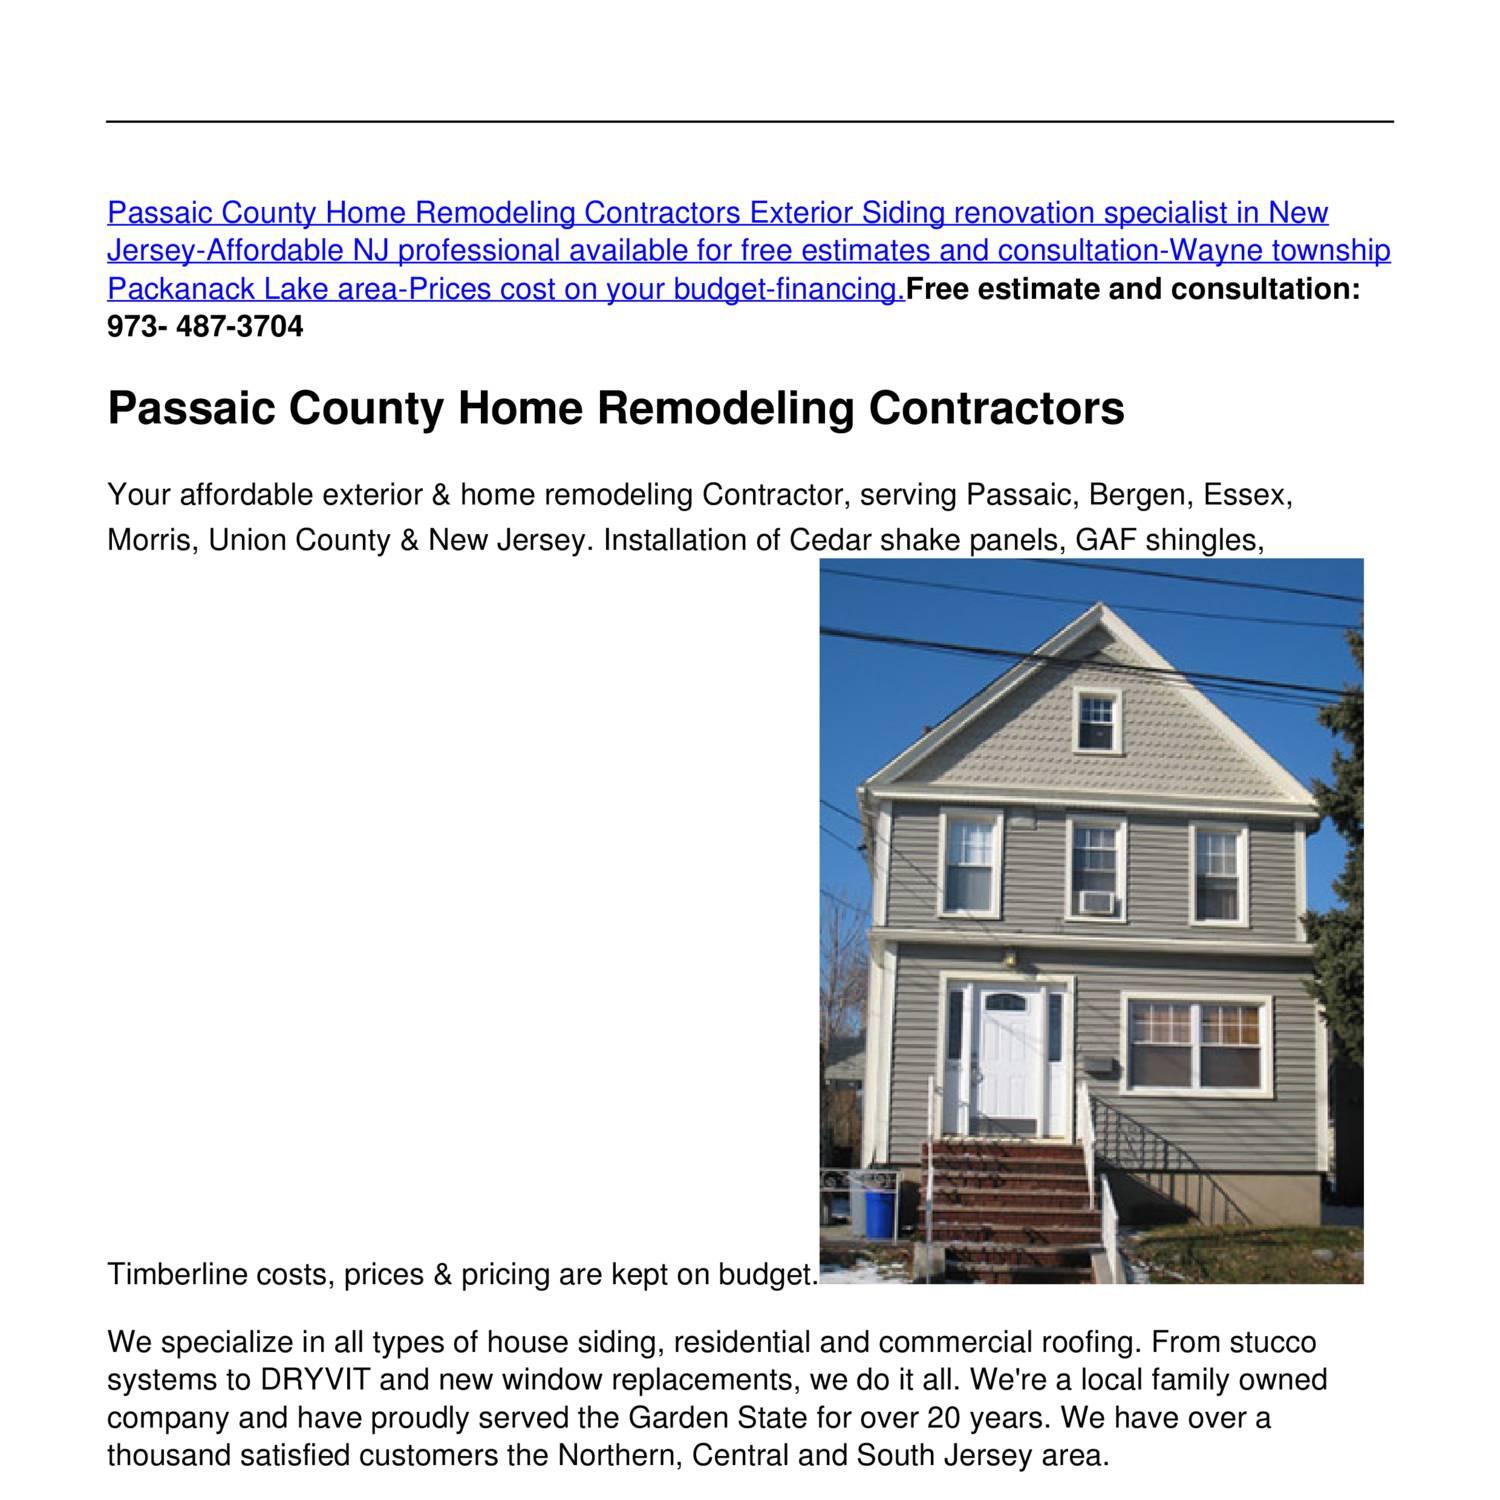 Passaic_County_Home_Remodeling_Contractors.pdf